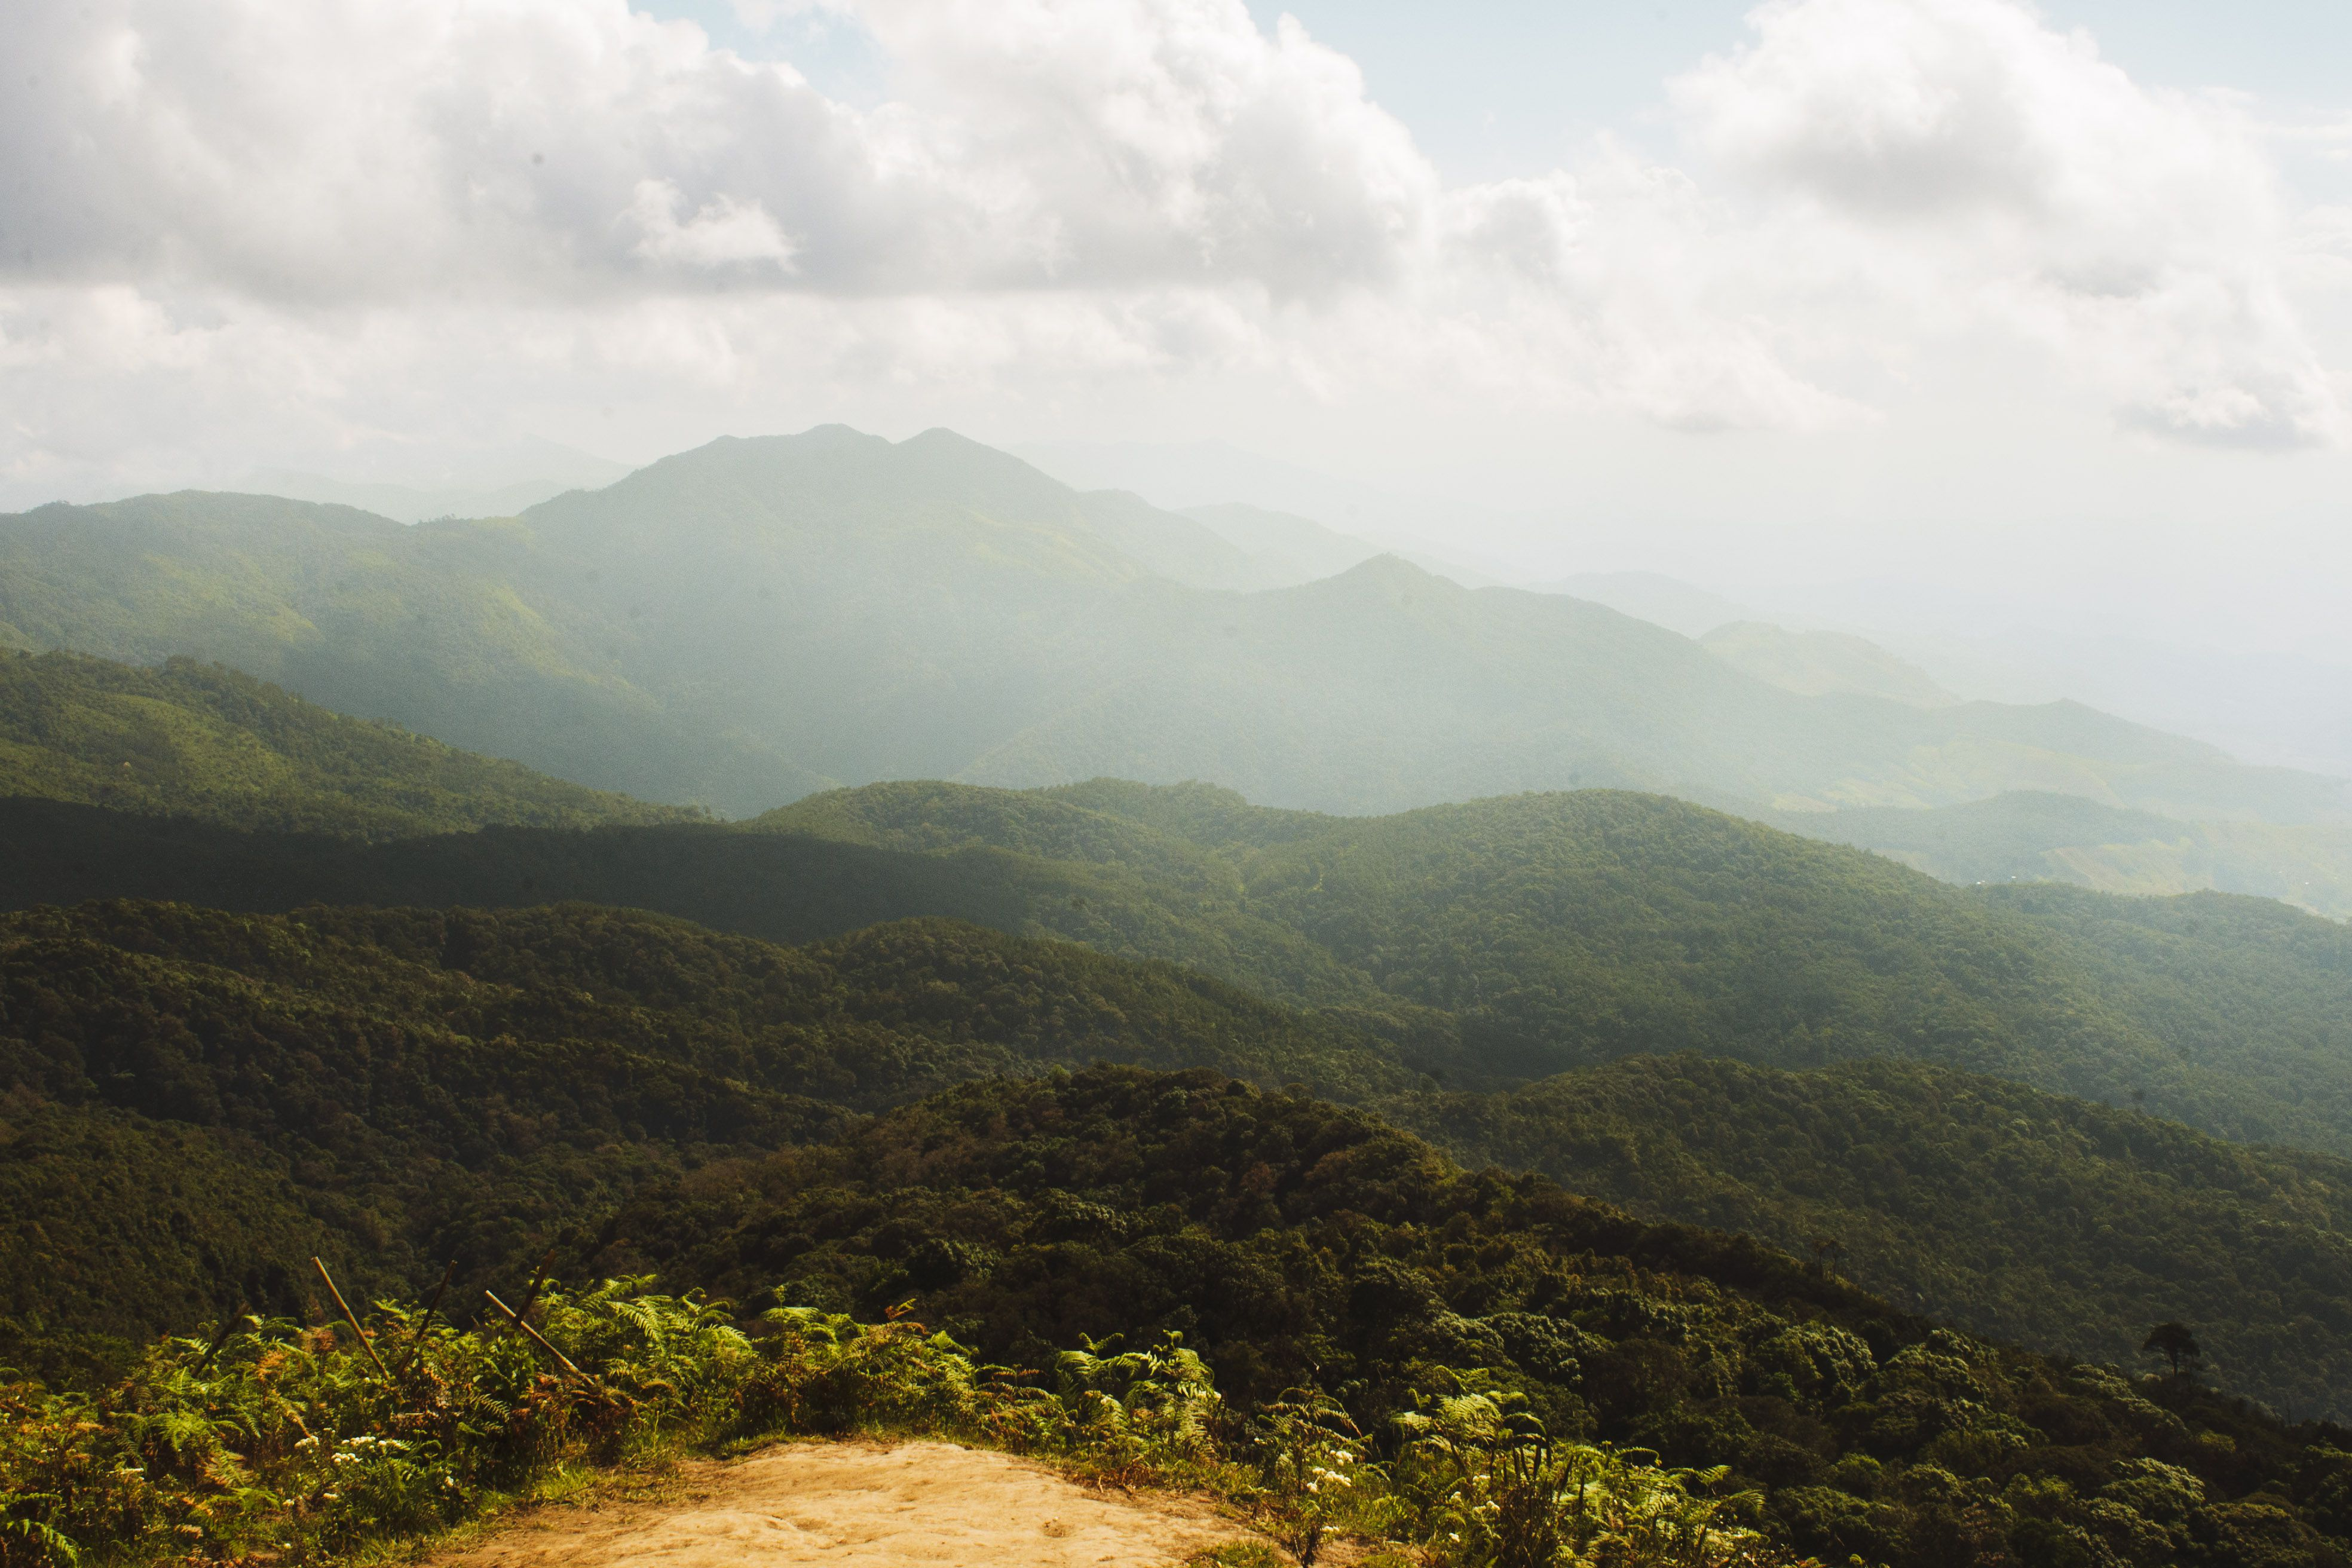 The view from Doi Inthanon of the surrounding mountains